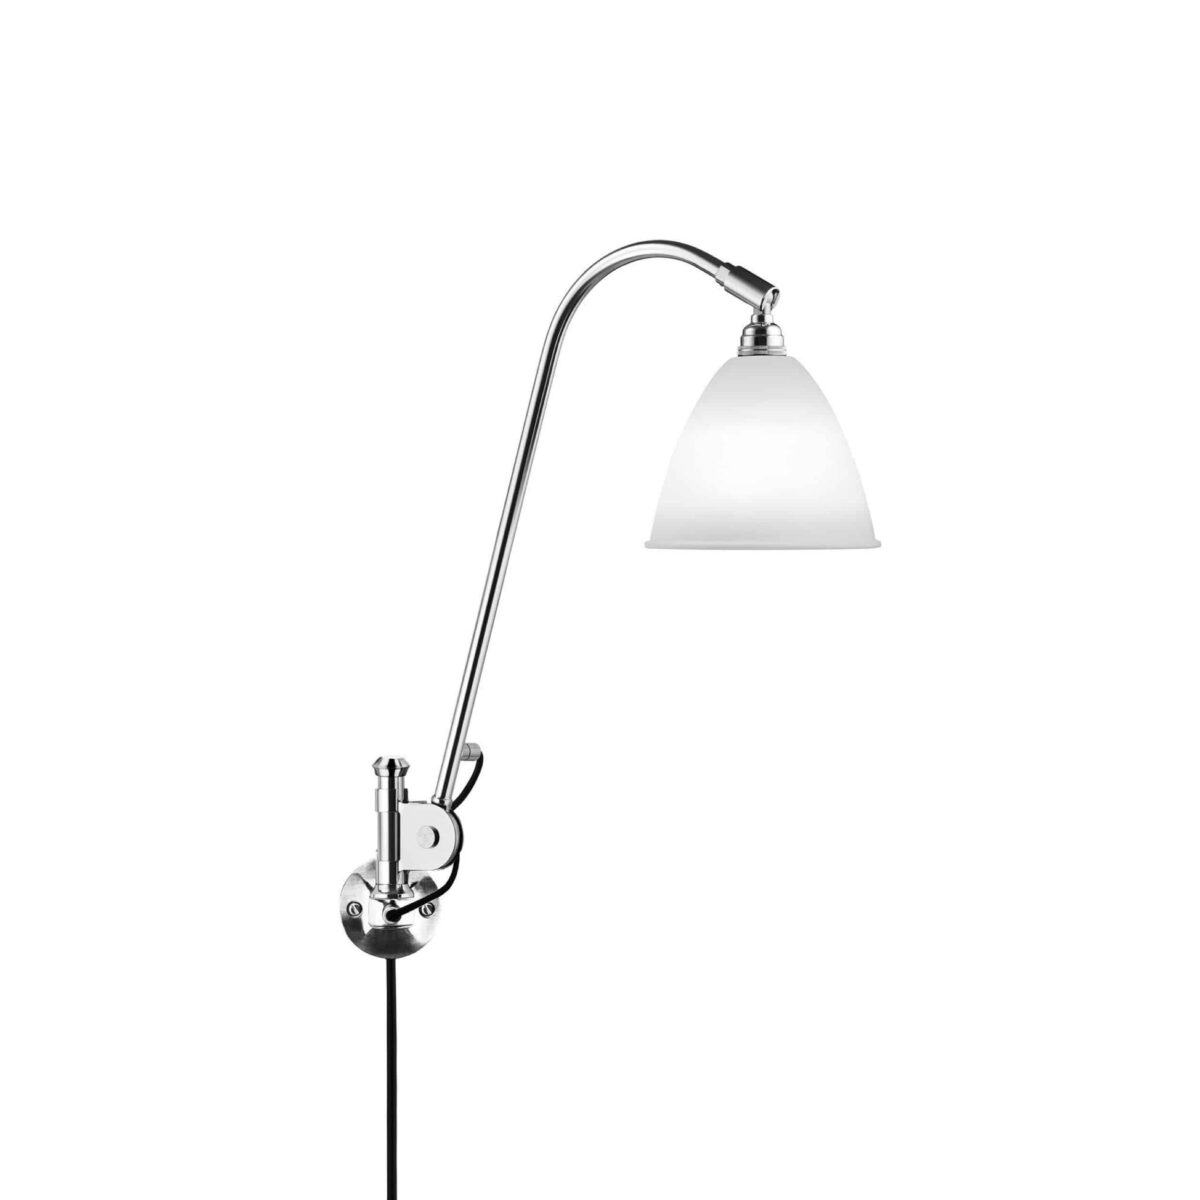 gubi-bestlite-wall-lamp-BL6-translucent-bone-china-porcelain-chrome-01